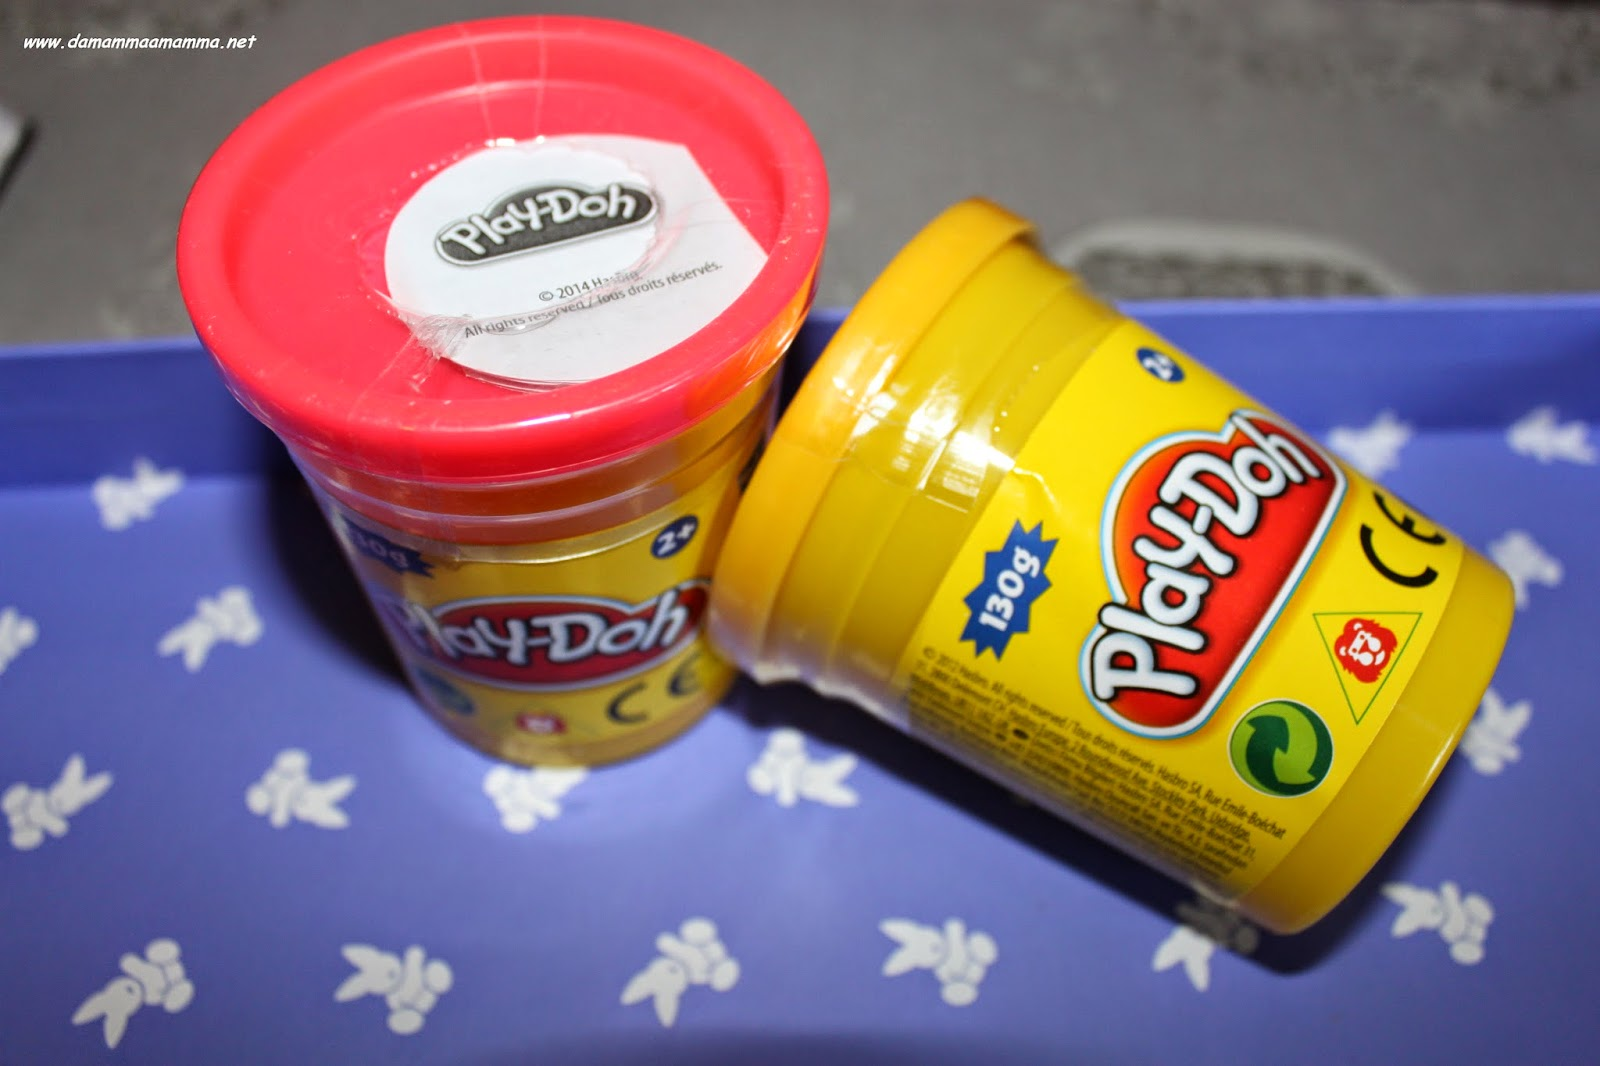 nonabox-e-play-doh